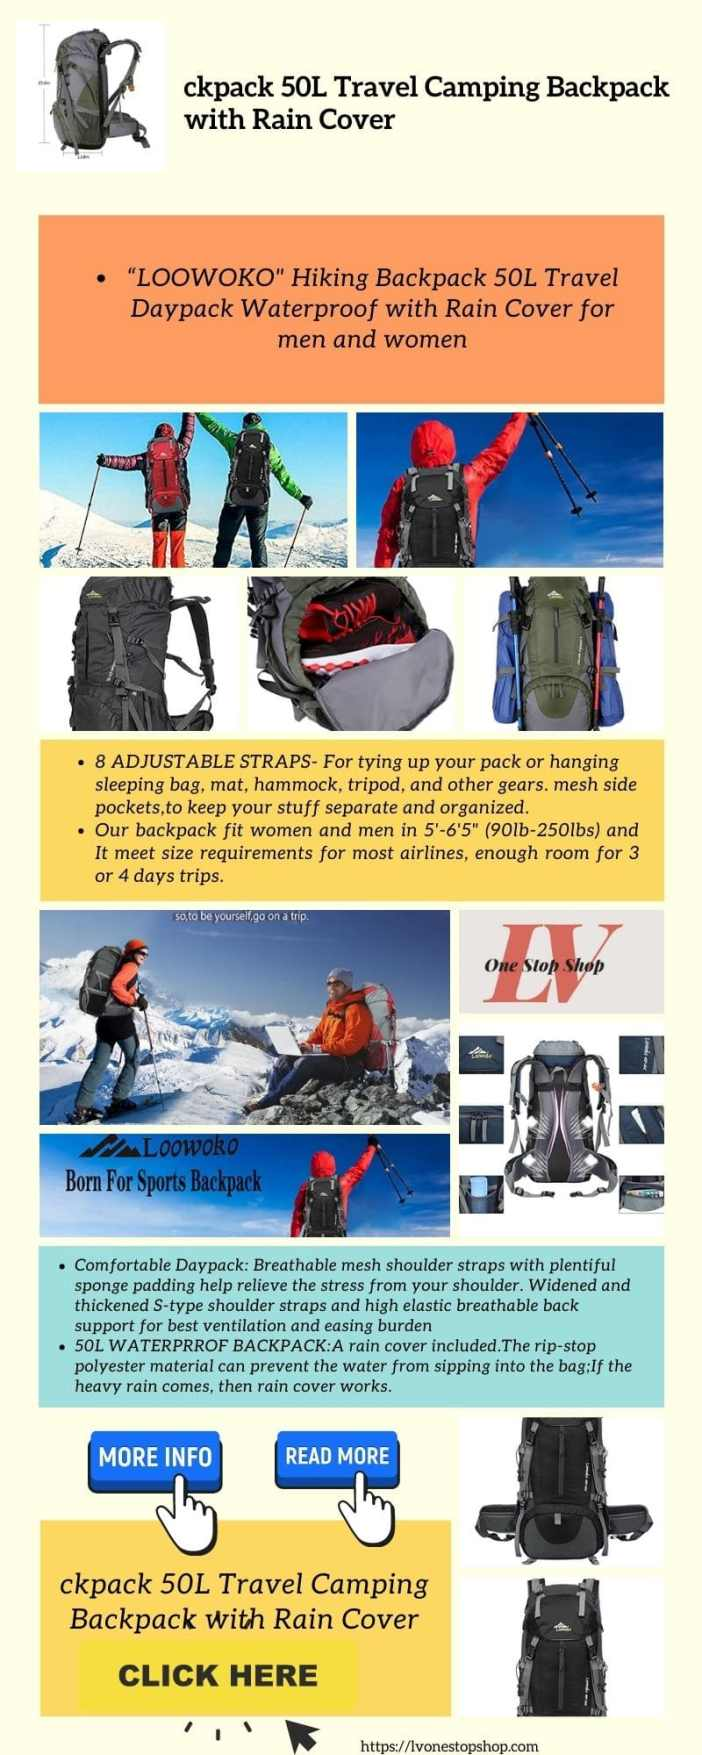 Loowoko Hiking Backpack 50L Travel Camping Backpack with Rain Cover info